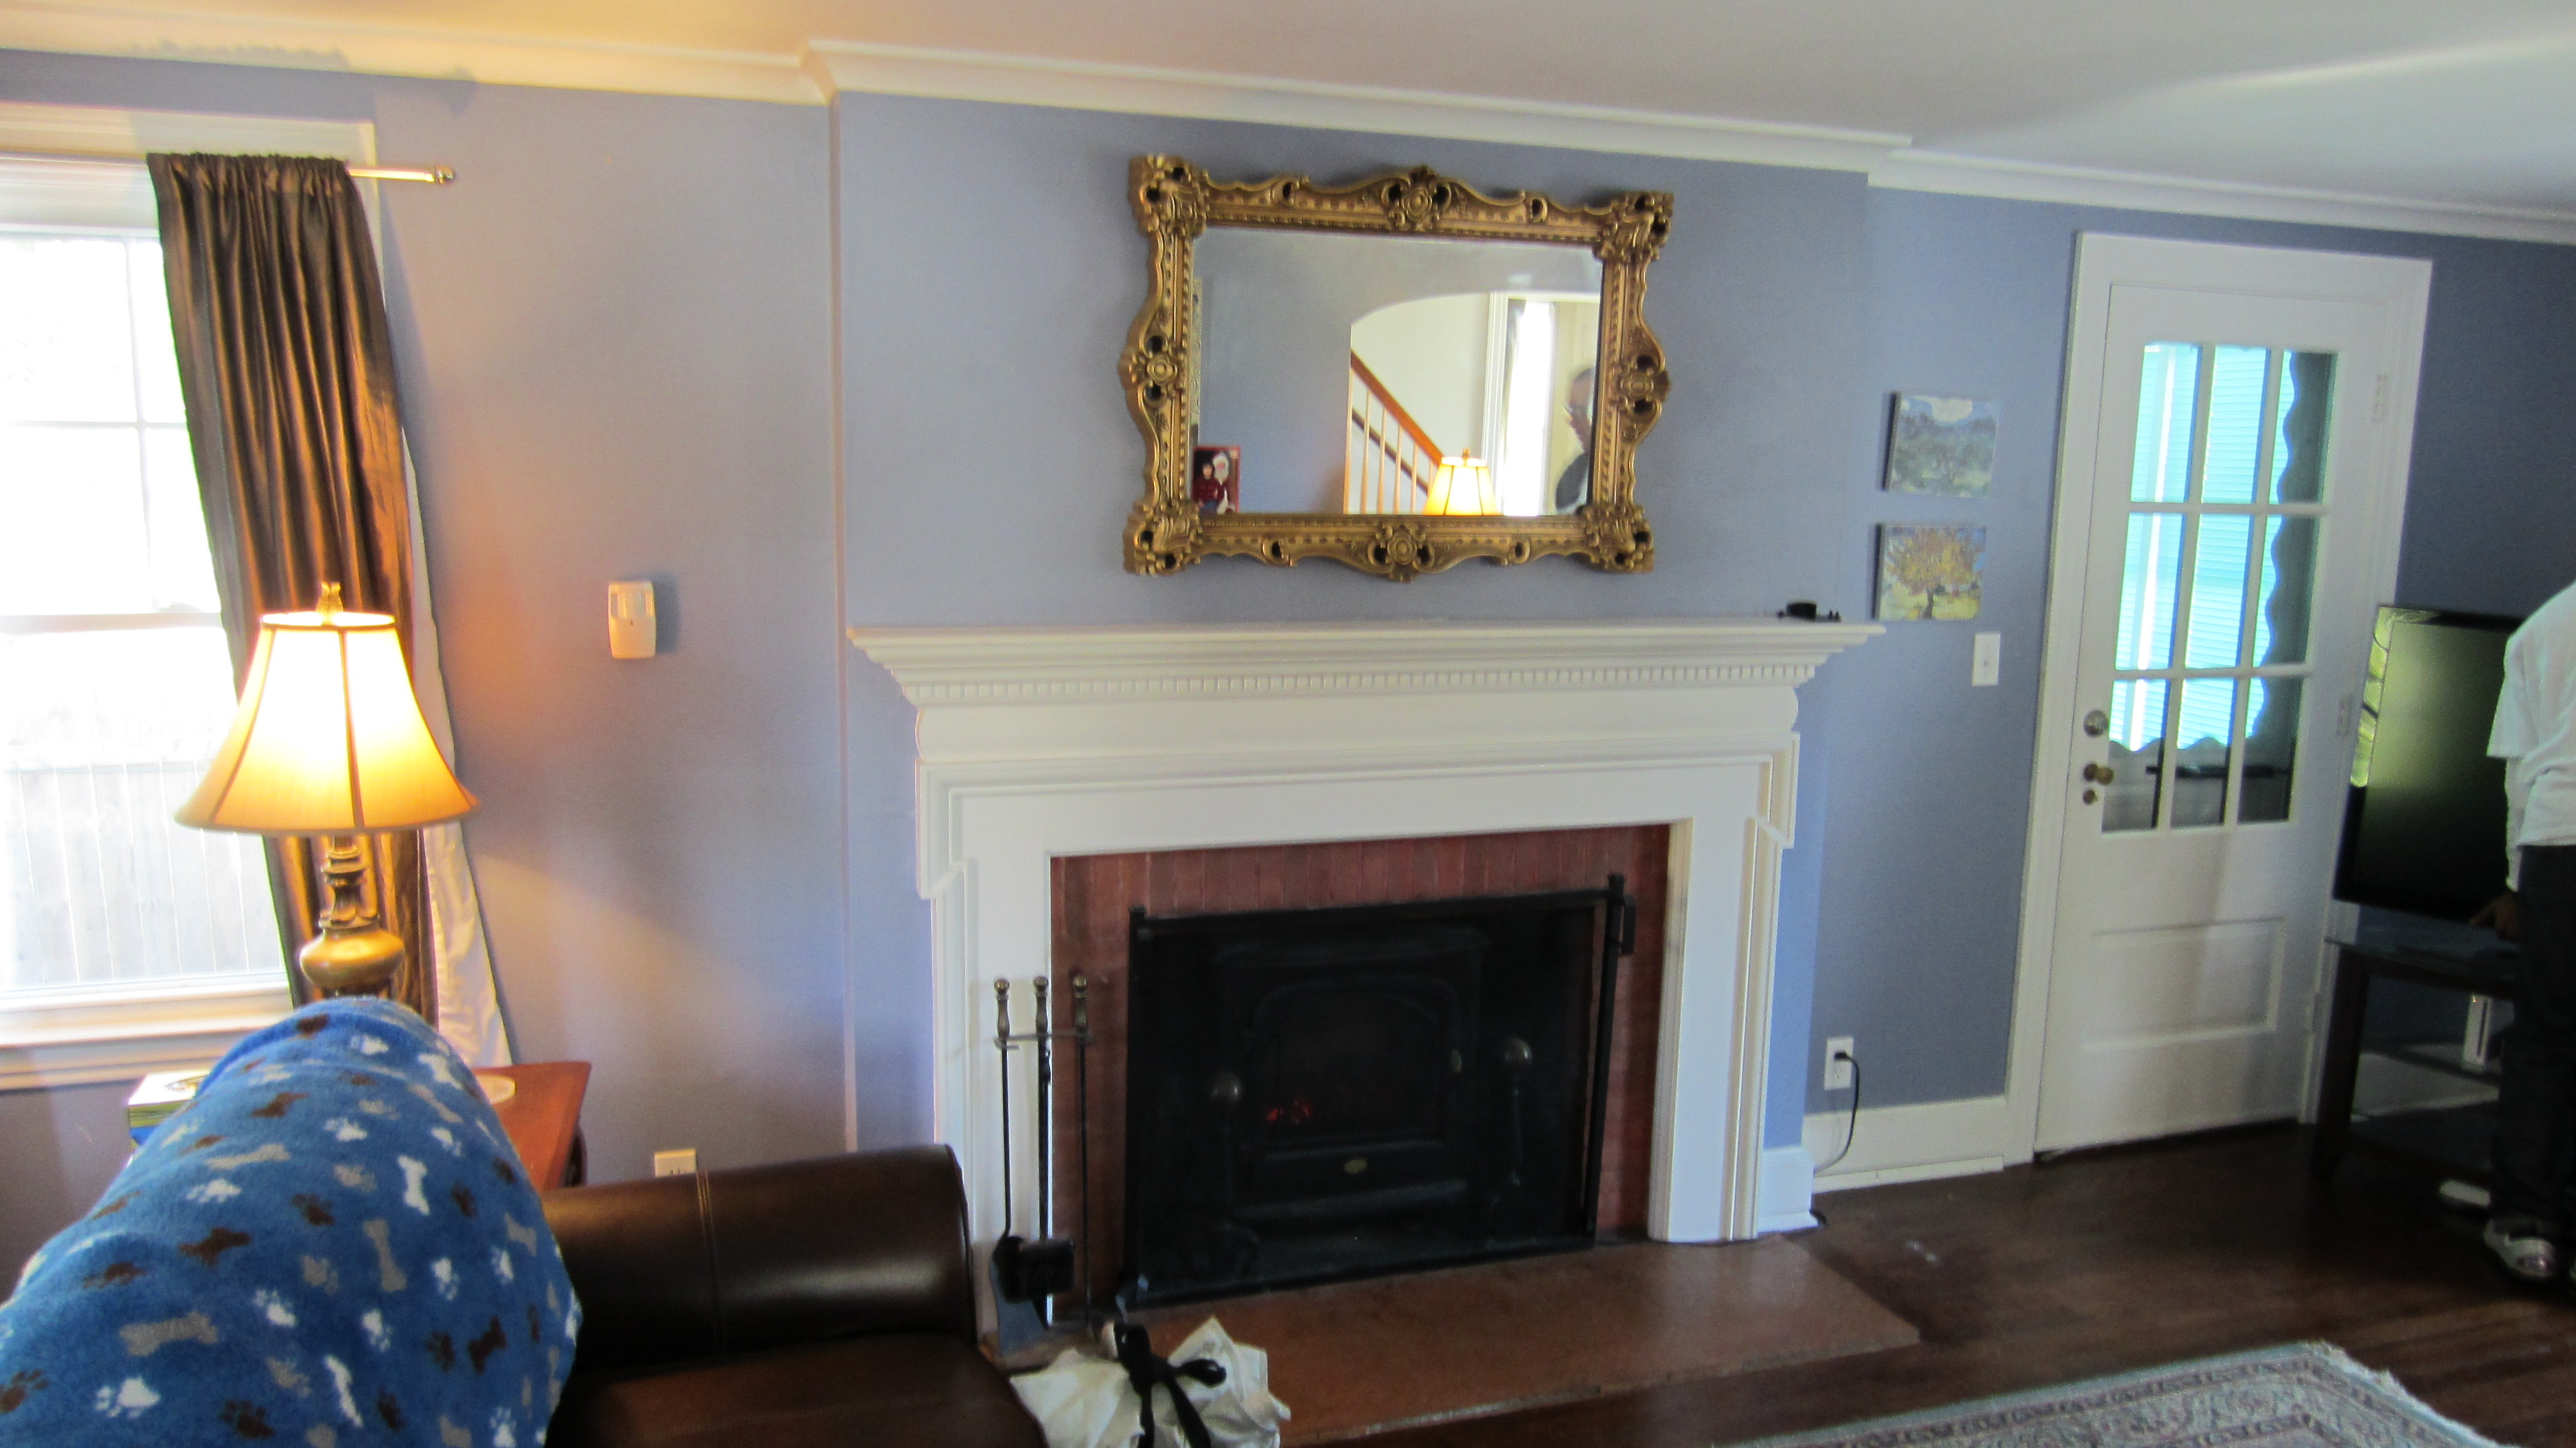 Blog | Home Theater Installation | Connecticut's Finest ...